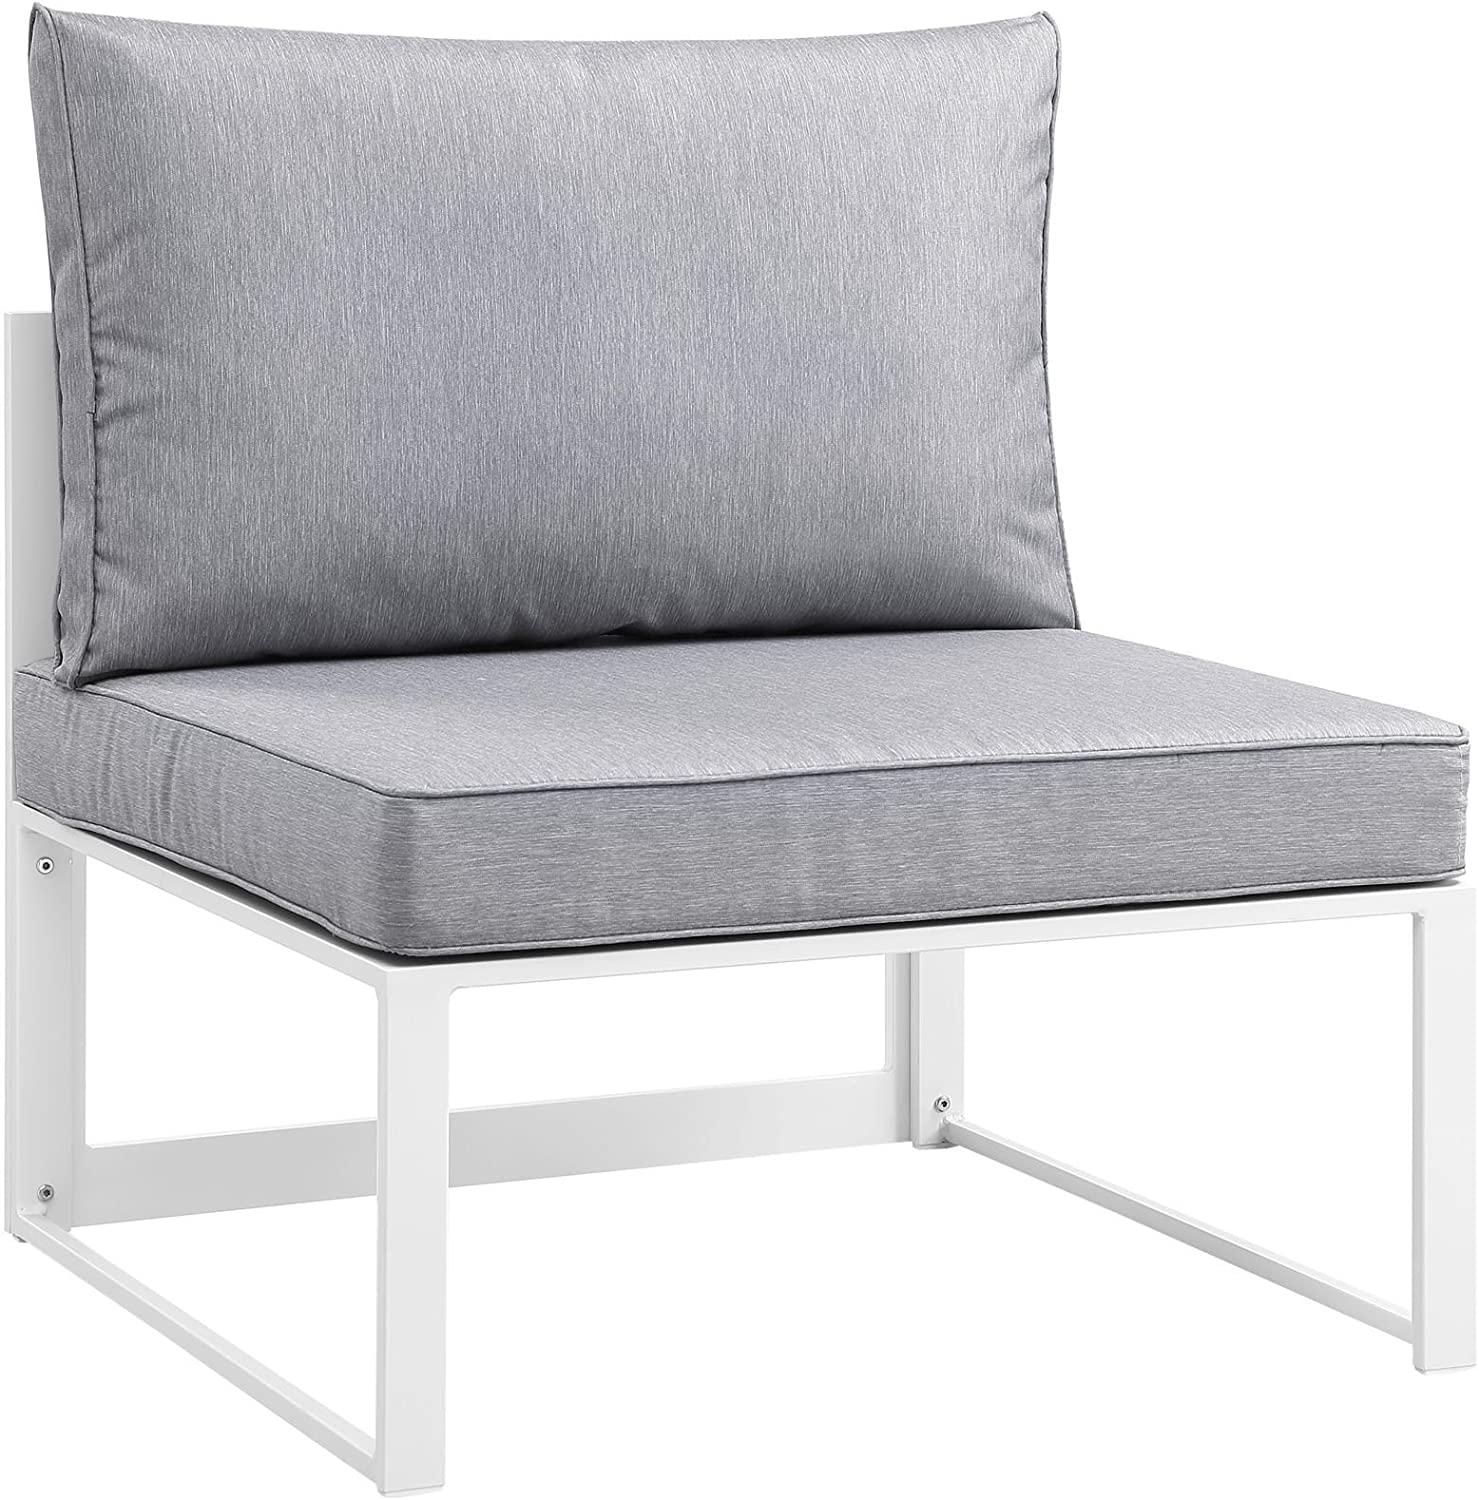 Modway Fortuna Aluminum Outdoor Patio Armless Chair in White Gray : Garden & Outdoor